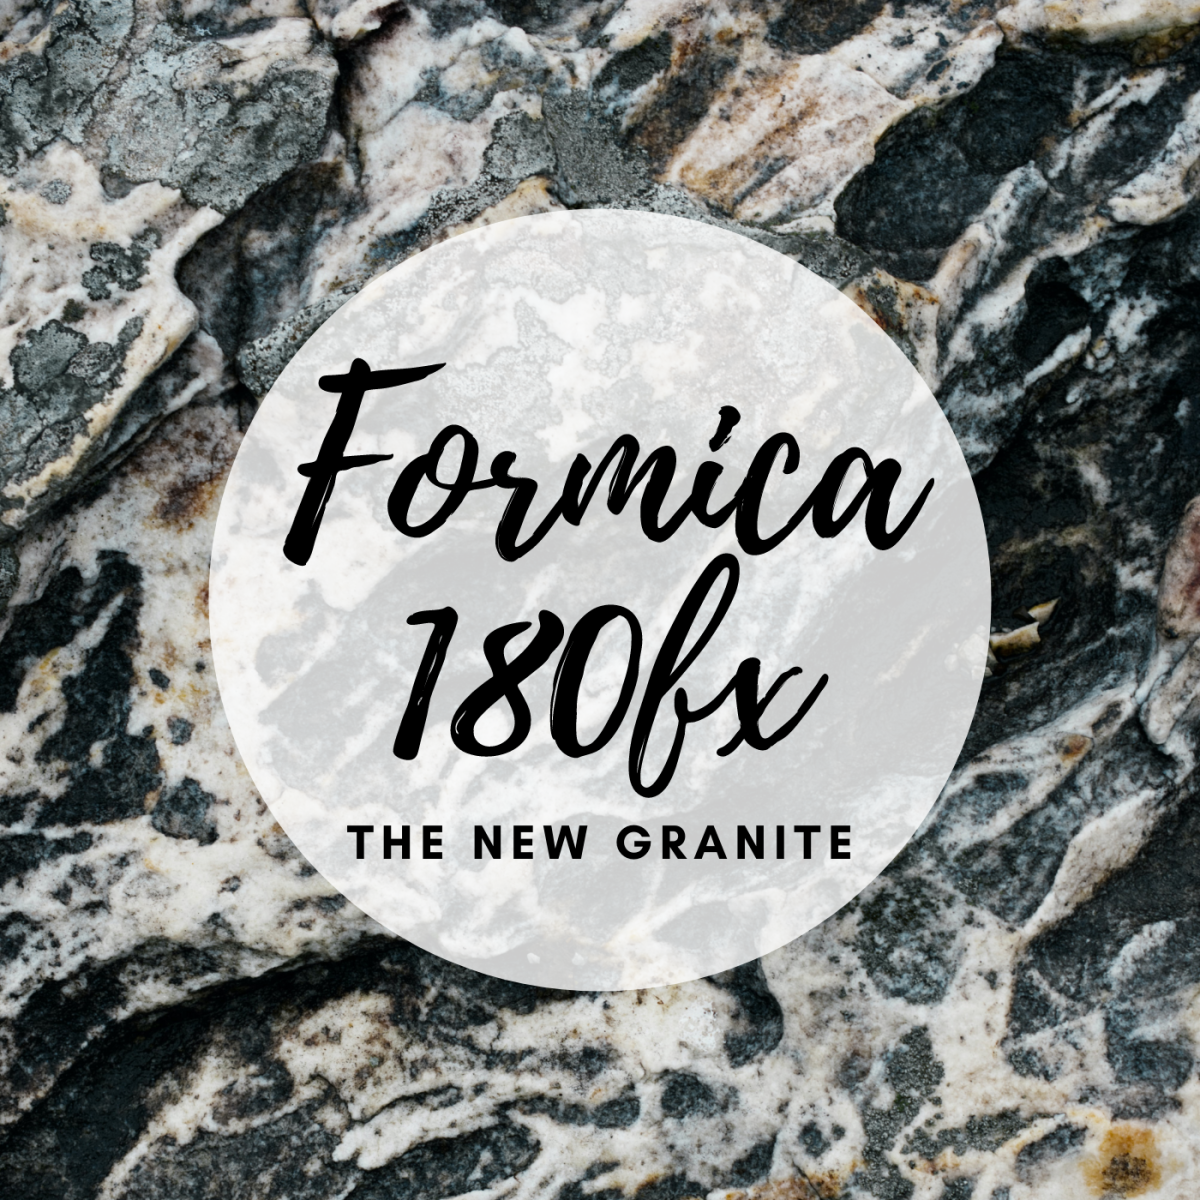 Formica 180fx: the New Granite? Affordable Kitchen Remodeling With Laminate Countertops (and Refinished Cabinets)